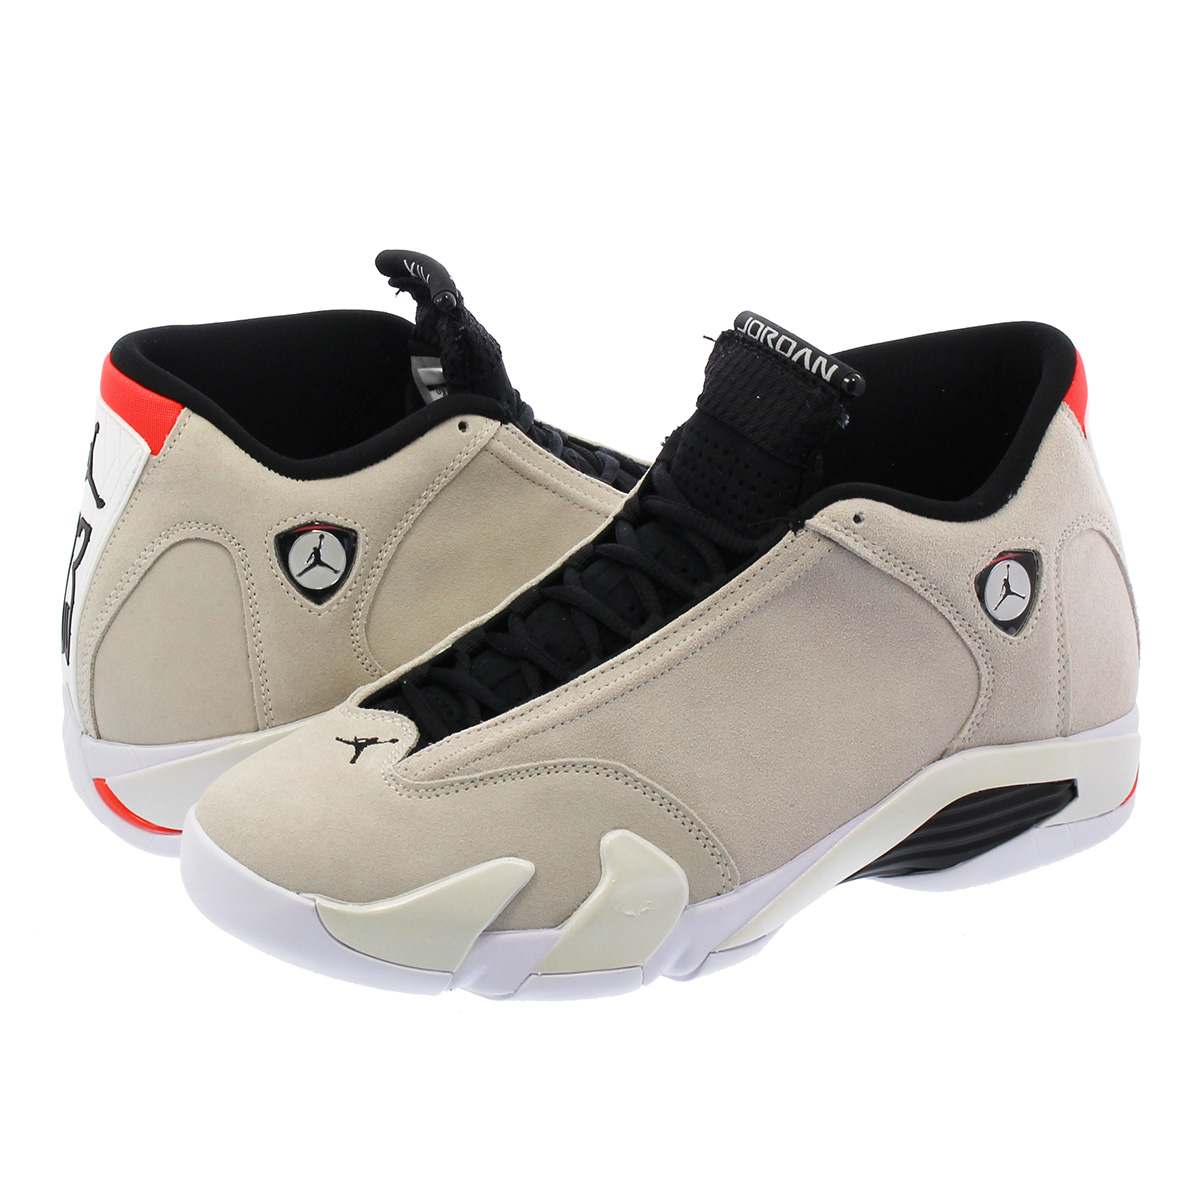 buy popular 709bf 264f8 NIKE AIR JORDAN 14 RETRO Nike Air Jordan 14 nostalgic DESERT  SAND/BLACK/WHITE/INFRARED 23 487,471-021